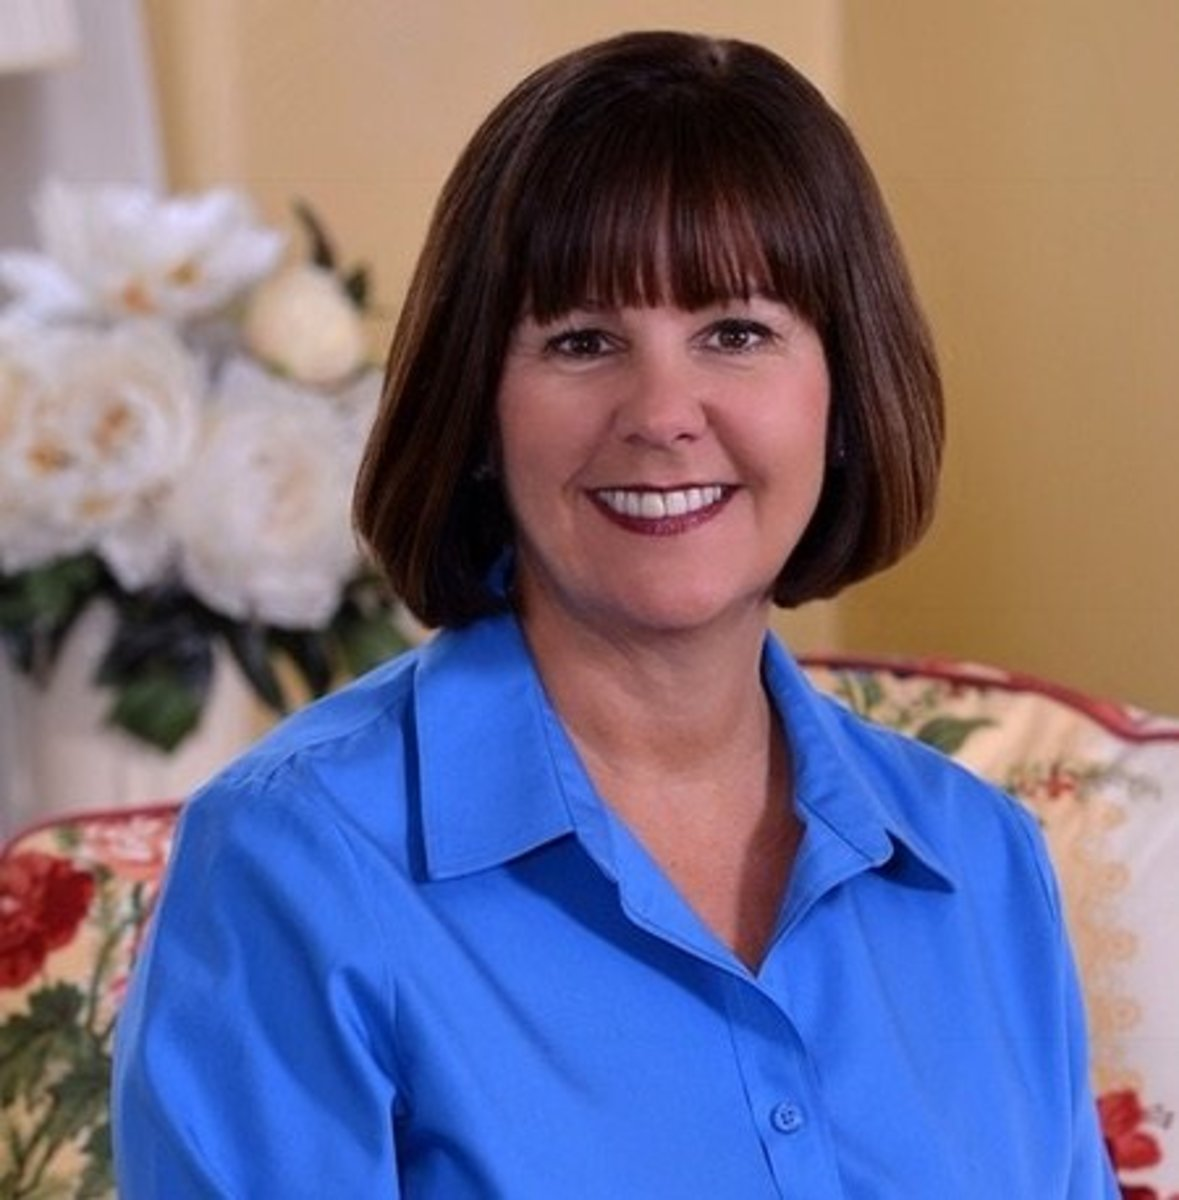 Karen Pence: Wife of Vice President